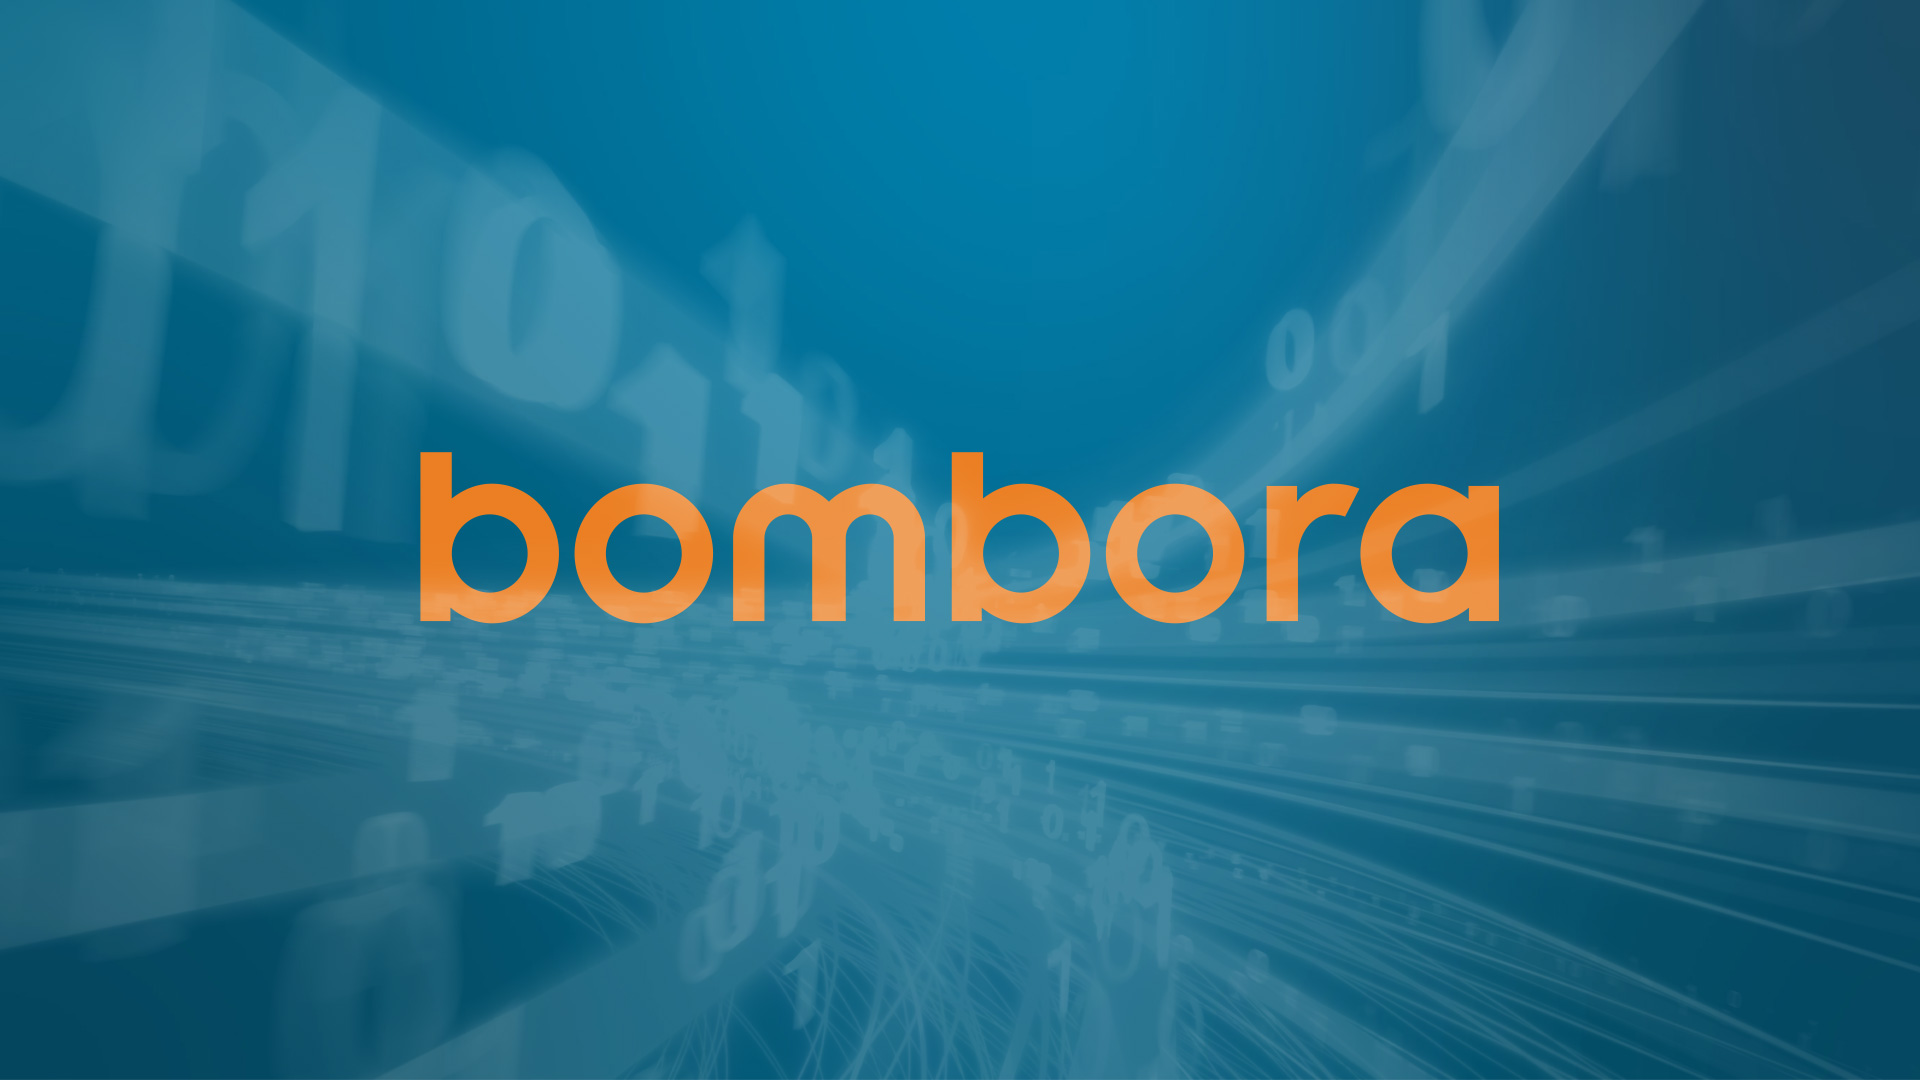 Bombora lets clients know which businesses are researching their products and services.